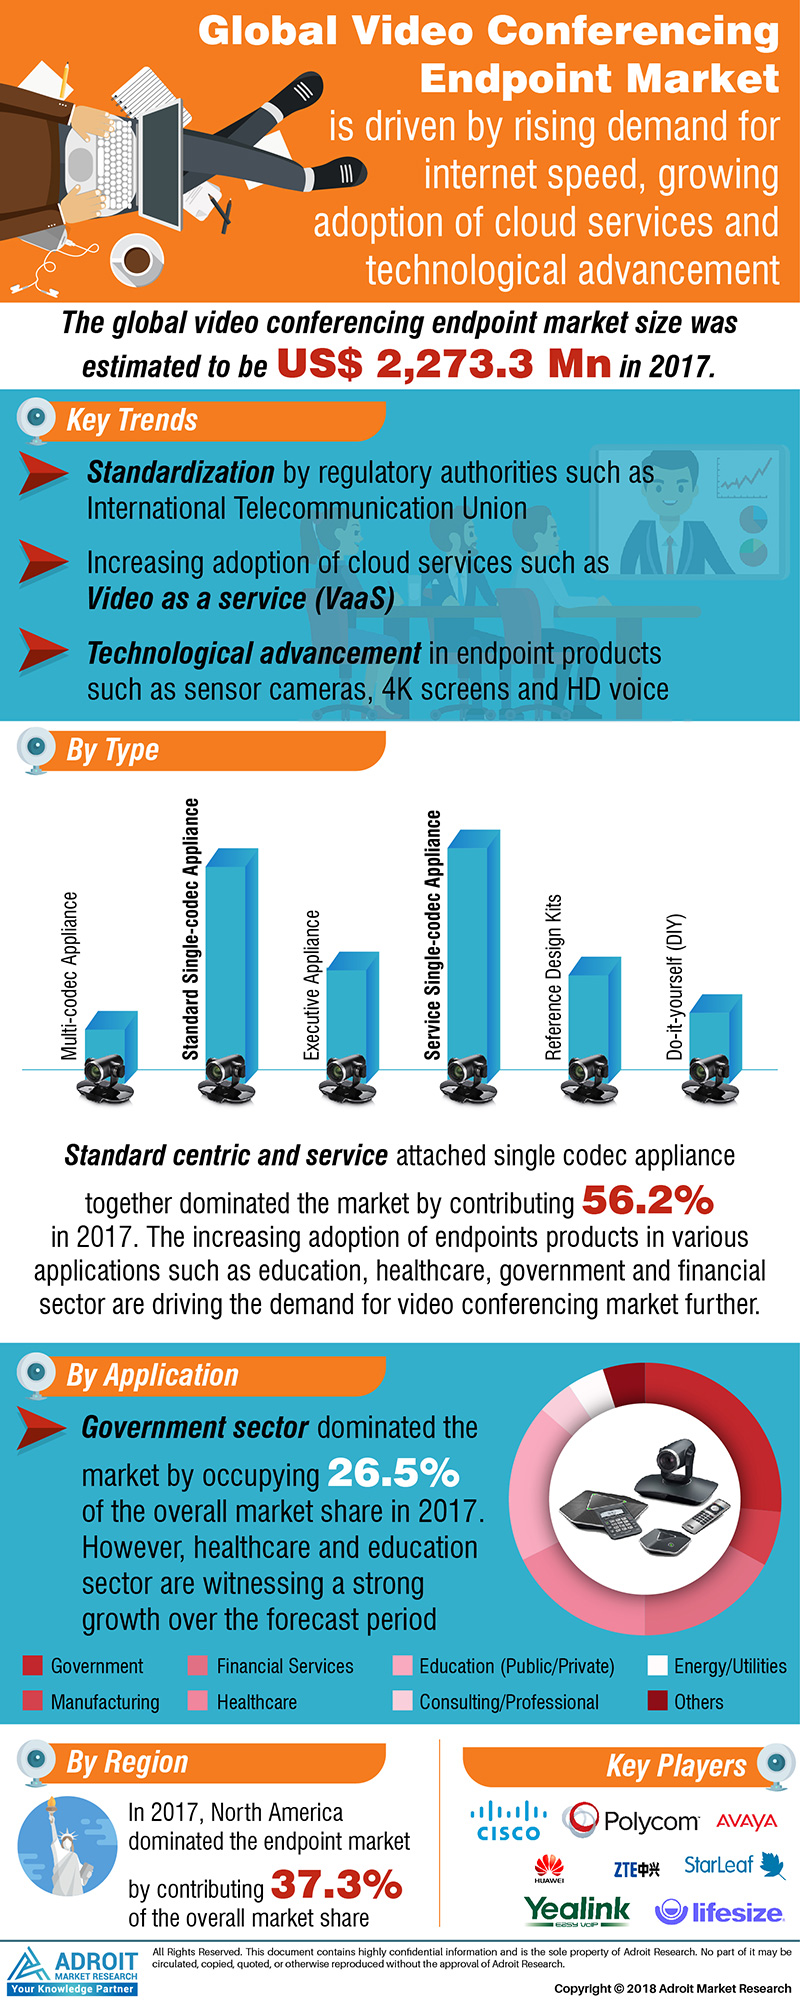 Global Video Conferencing Endpoint Market 2017 by Solution Type, Service Attached, Application by Region, and Forecast 2018 to 2025